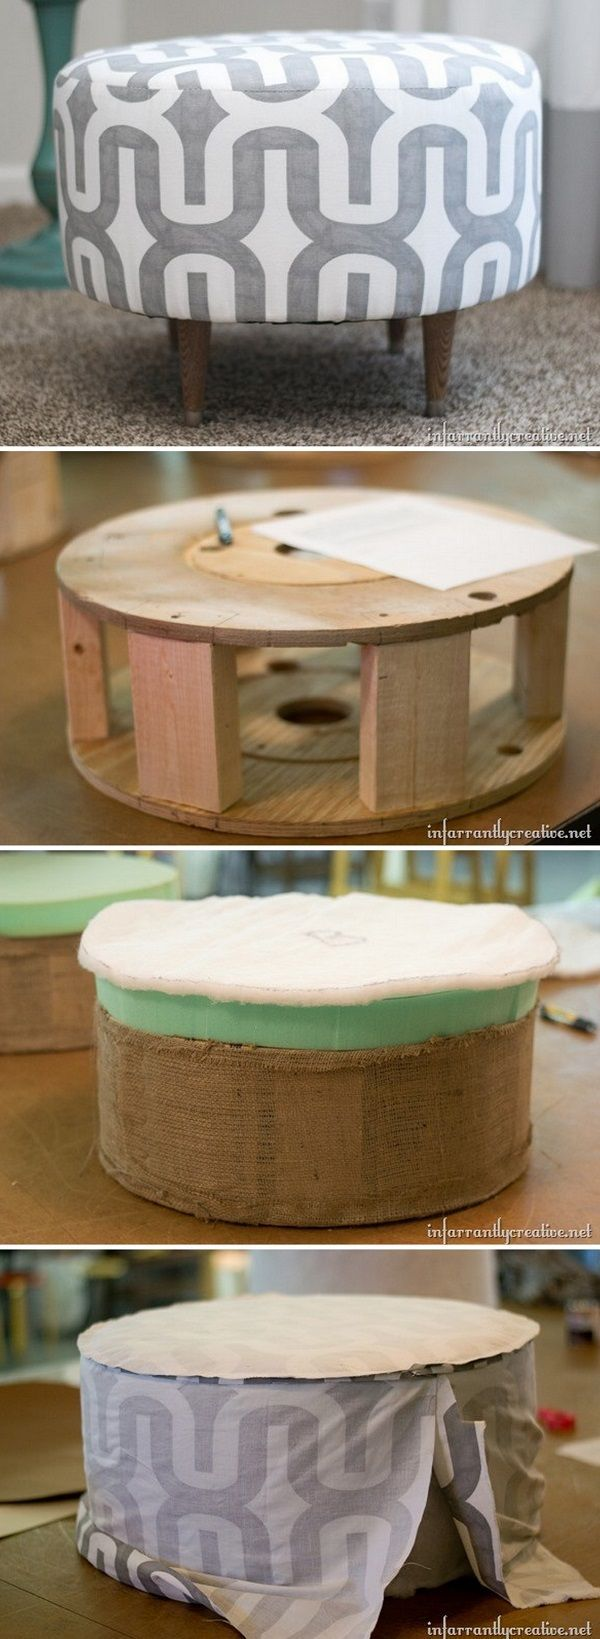 58 Easy DIY Ottoman Ideas You Can Make on a Budget